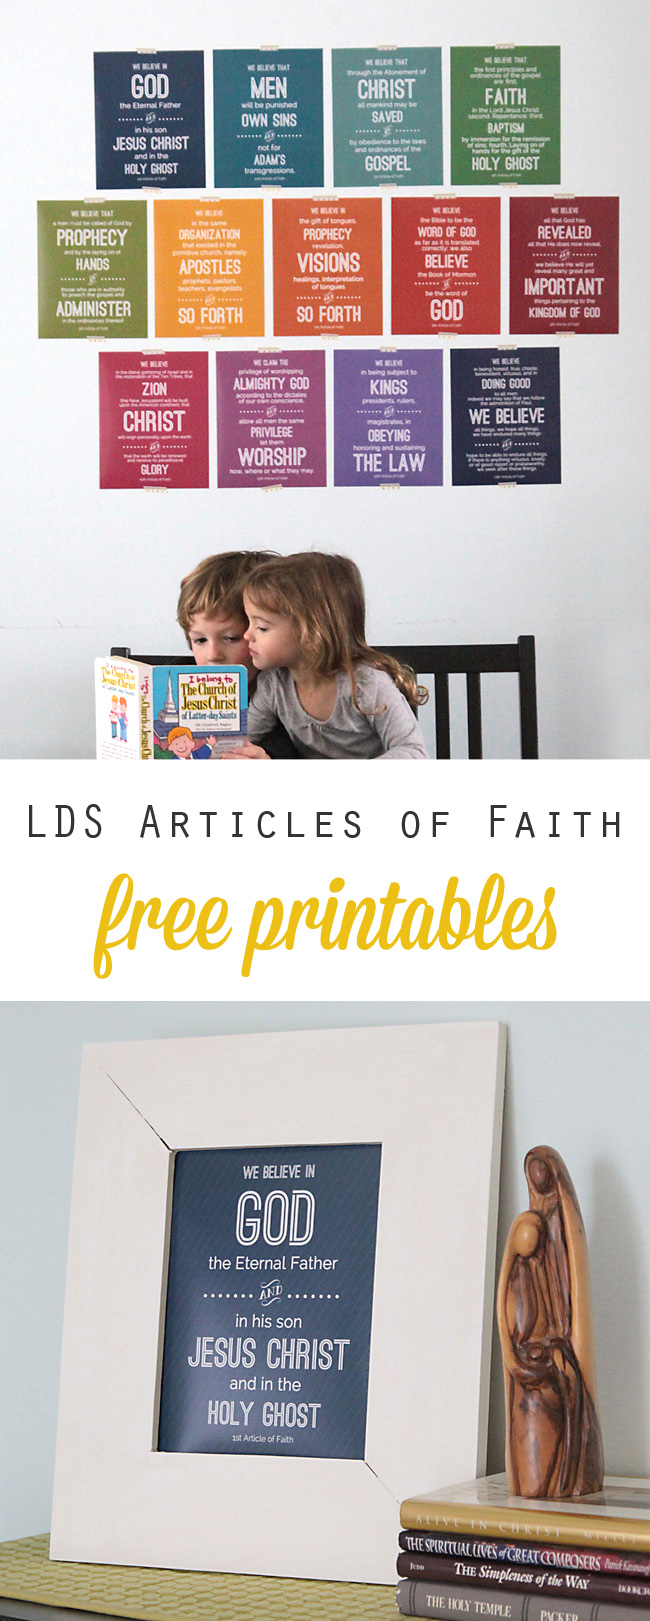 free printables for all 13 LDS Articles of Faith - great way to help kids with memorization! These would also make a fun family Christmas gift.